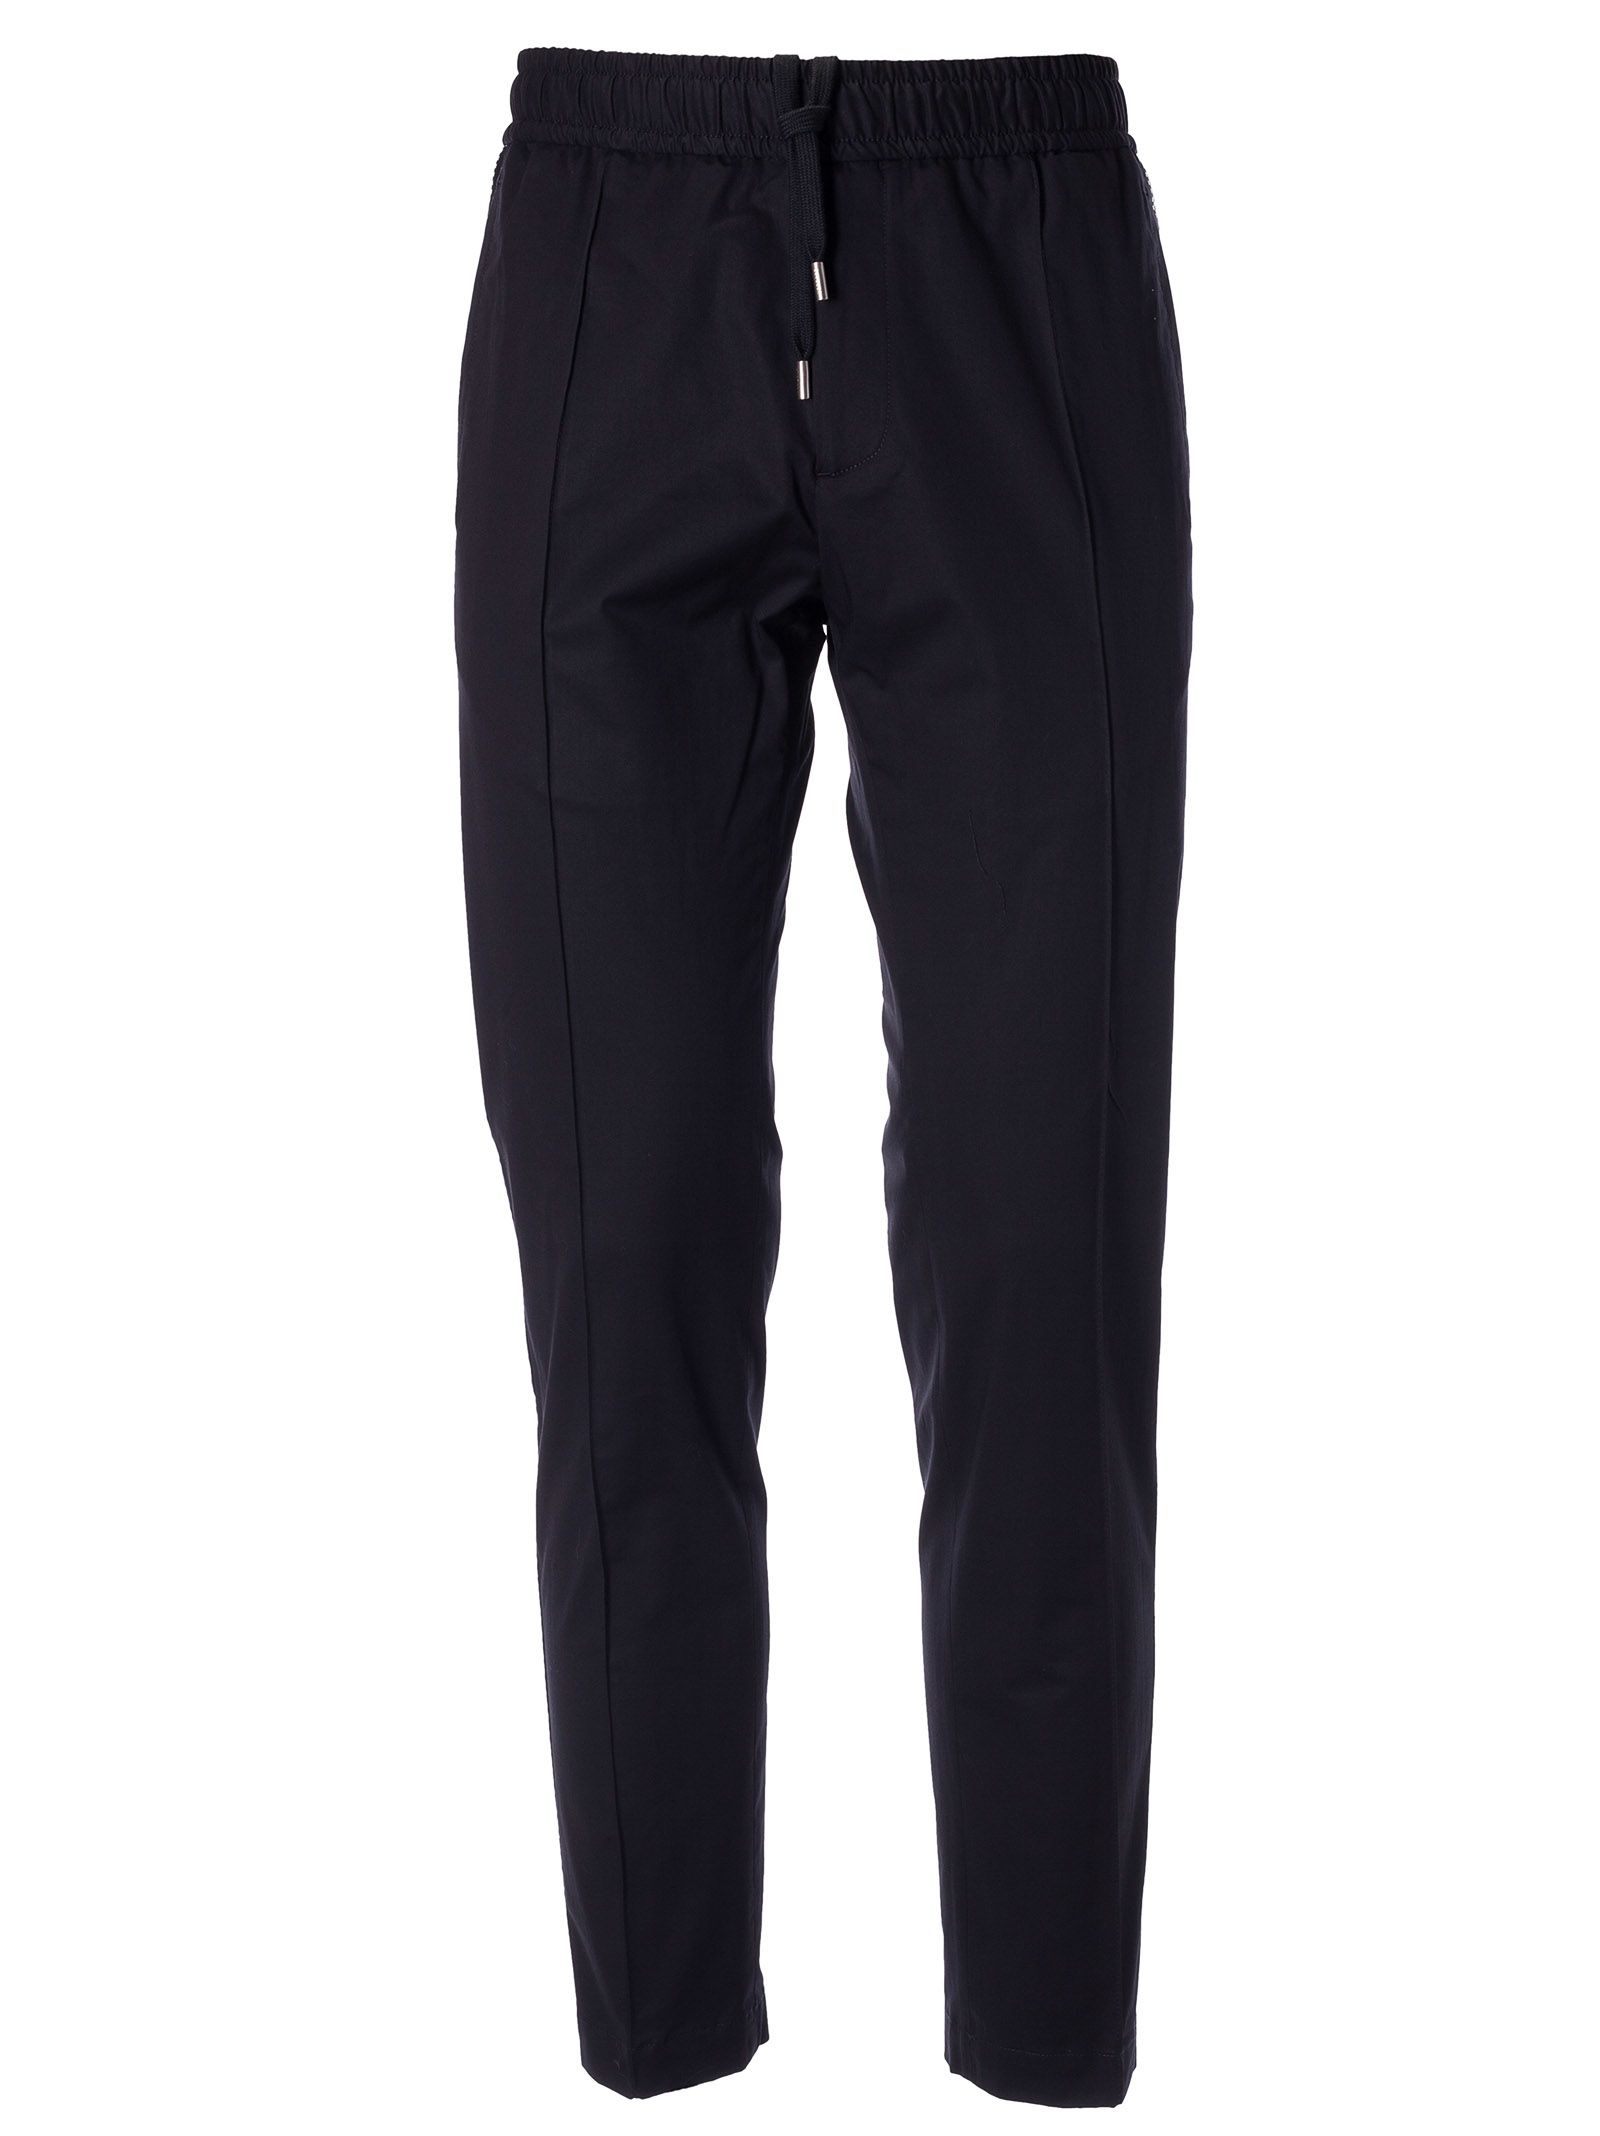 0e7460bd5086 Versace Versace Elasticated-waist Track Pants - Black - 10857527 ...